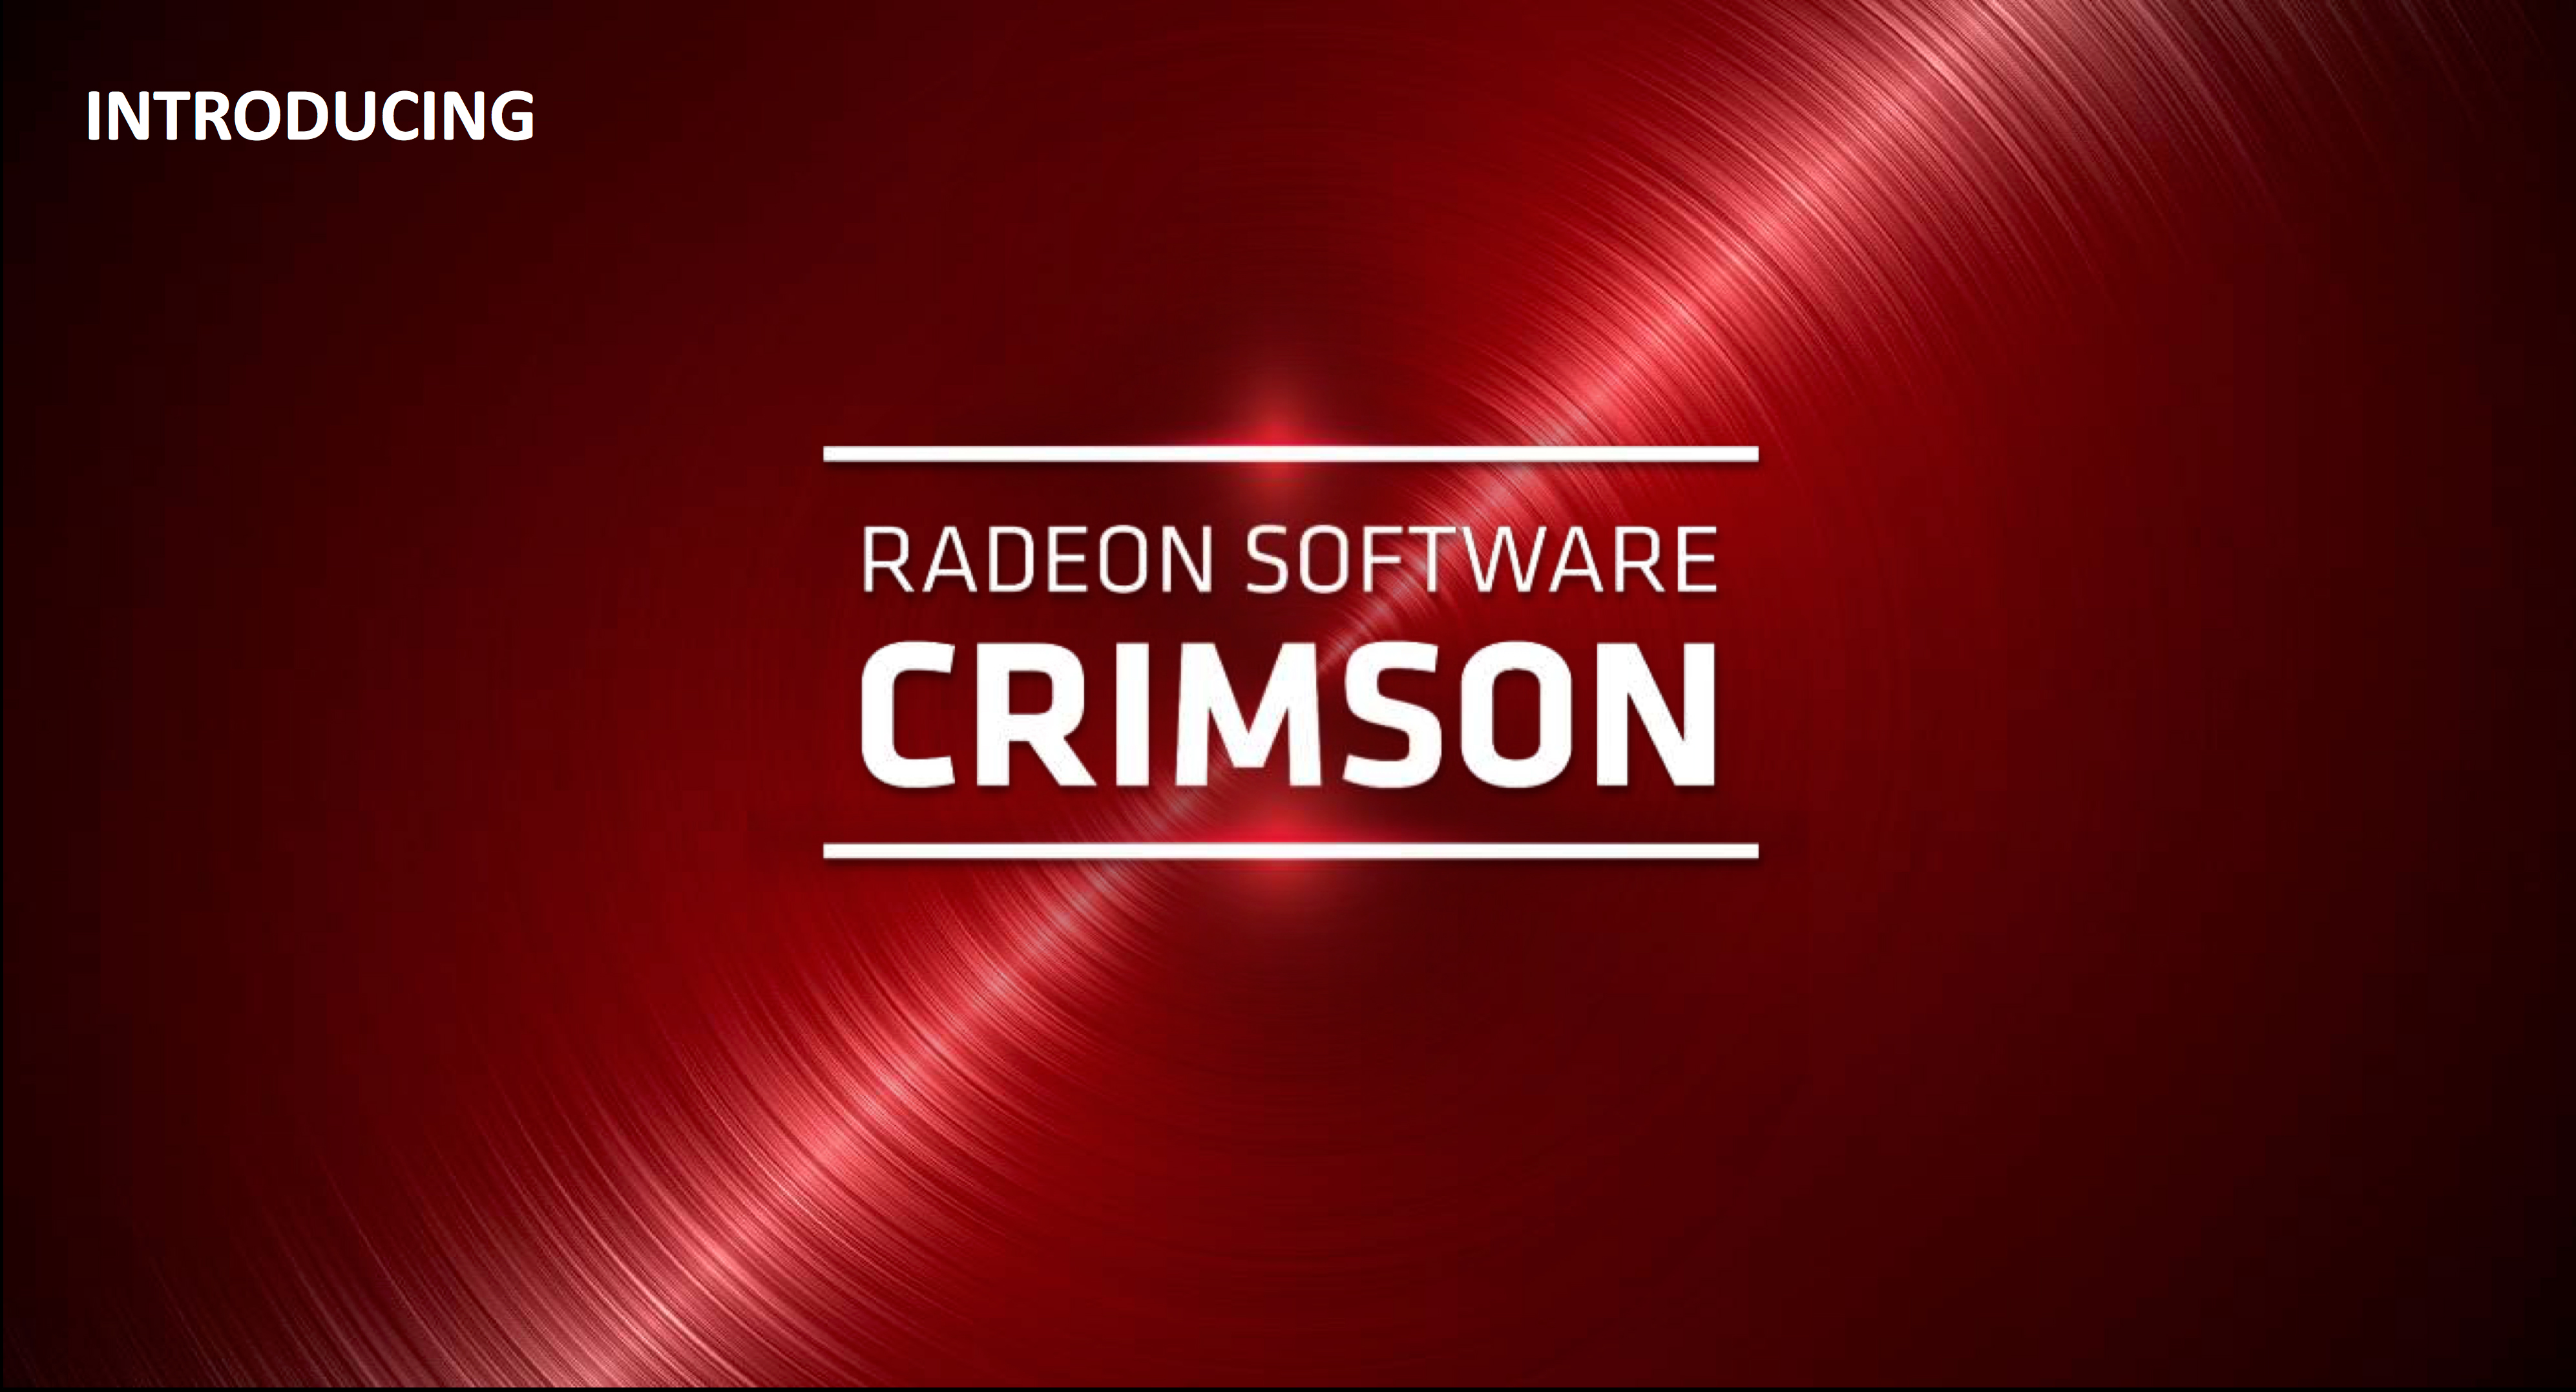 amd 15.12 drivers not installing